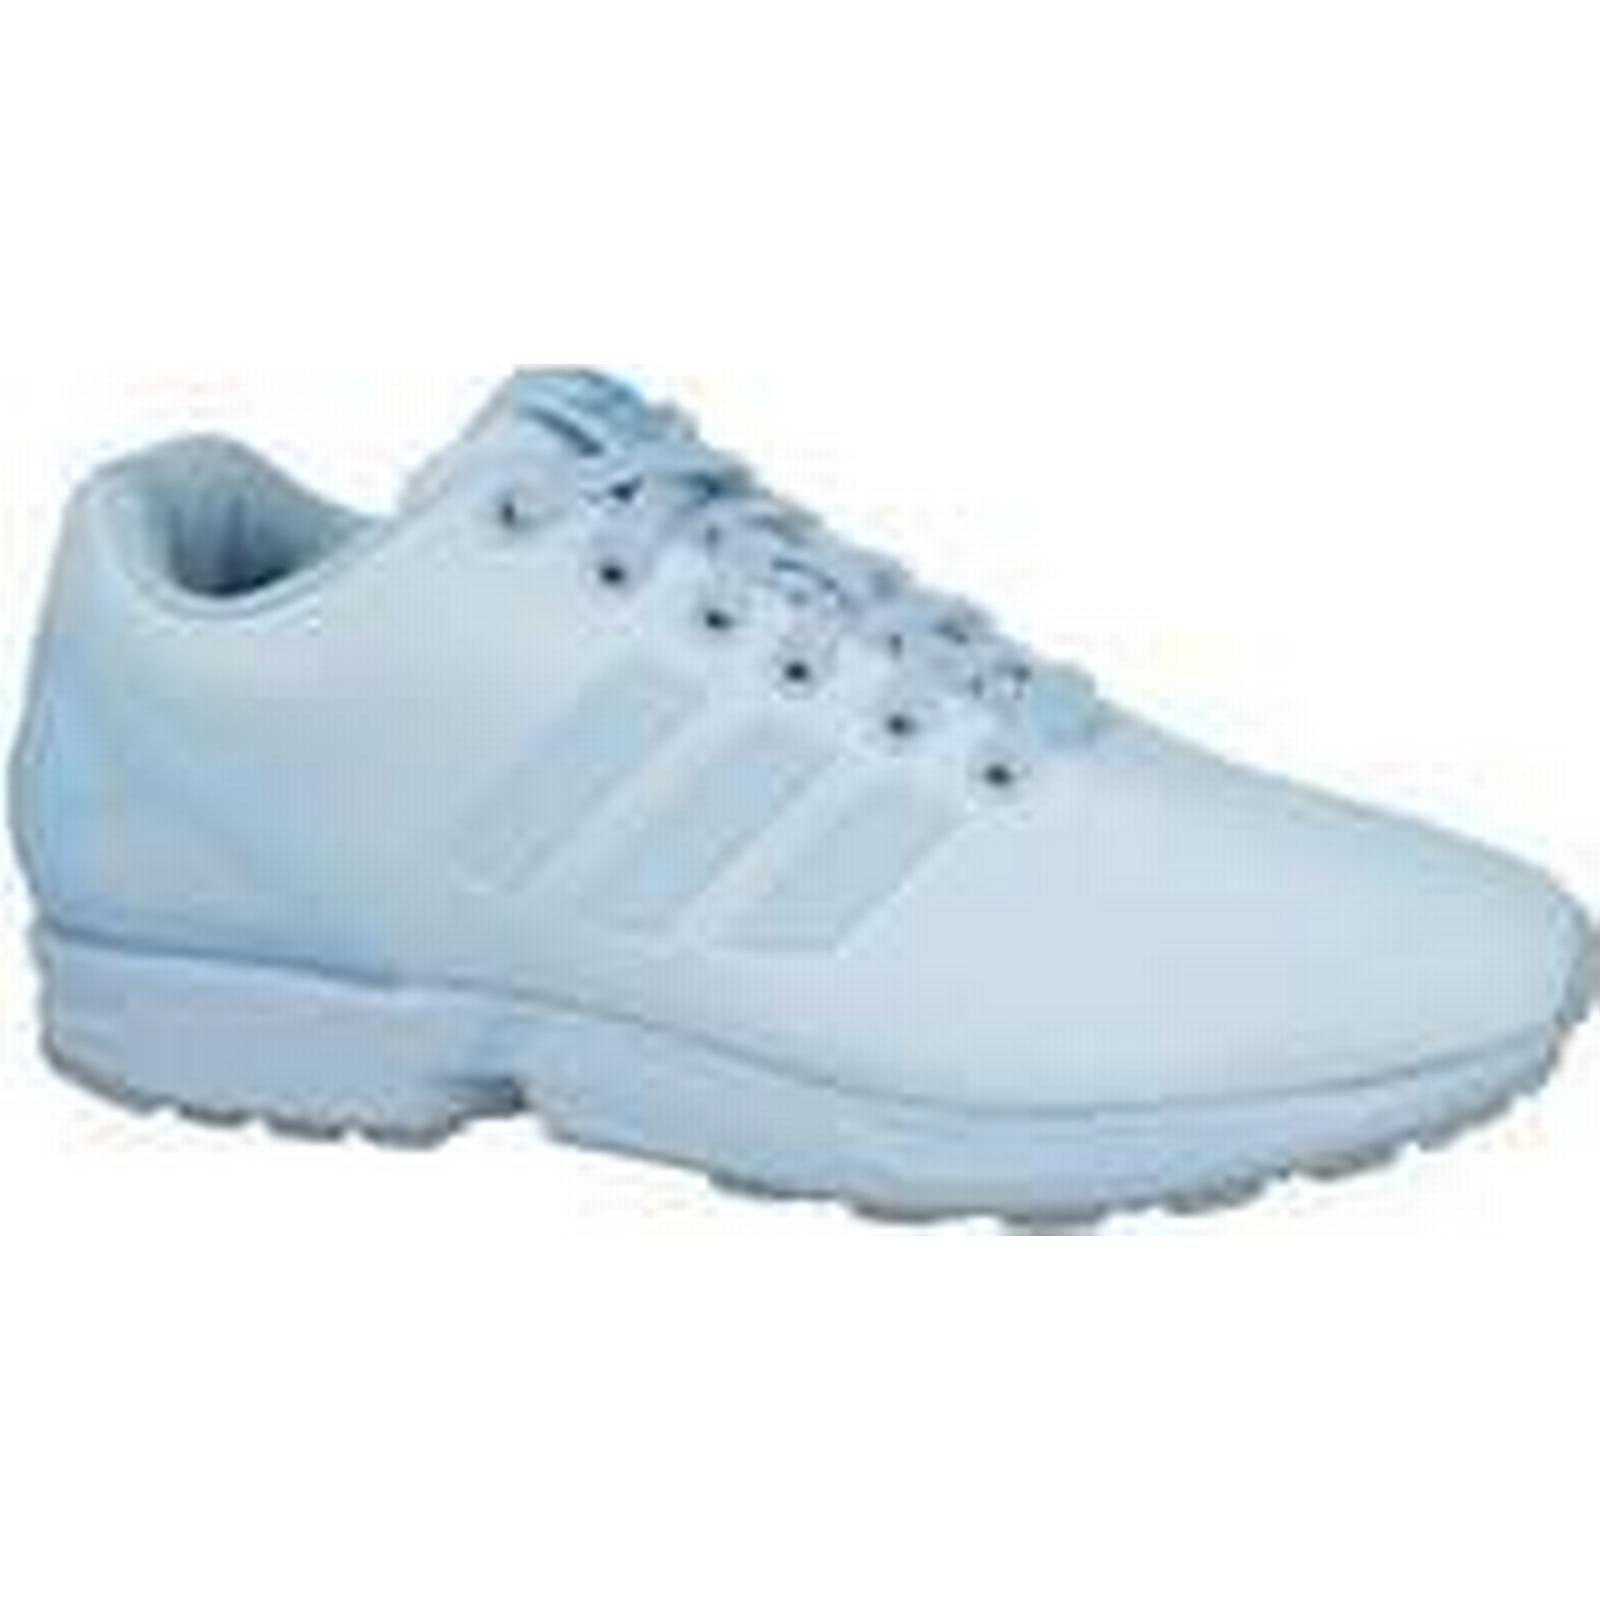 Spartoo.co.uk Shoes adidas ZX Flux men's Shoes Spartoo.co.uk (Trainers) in Blue 381810